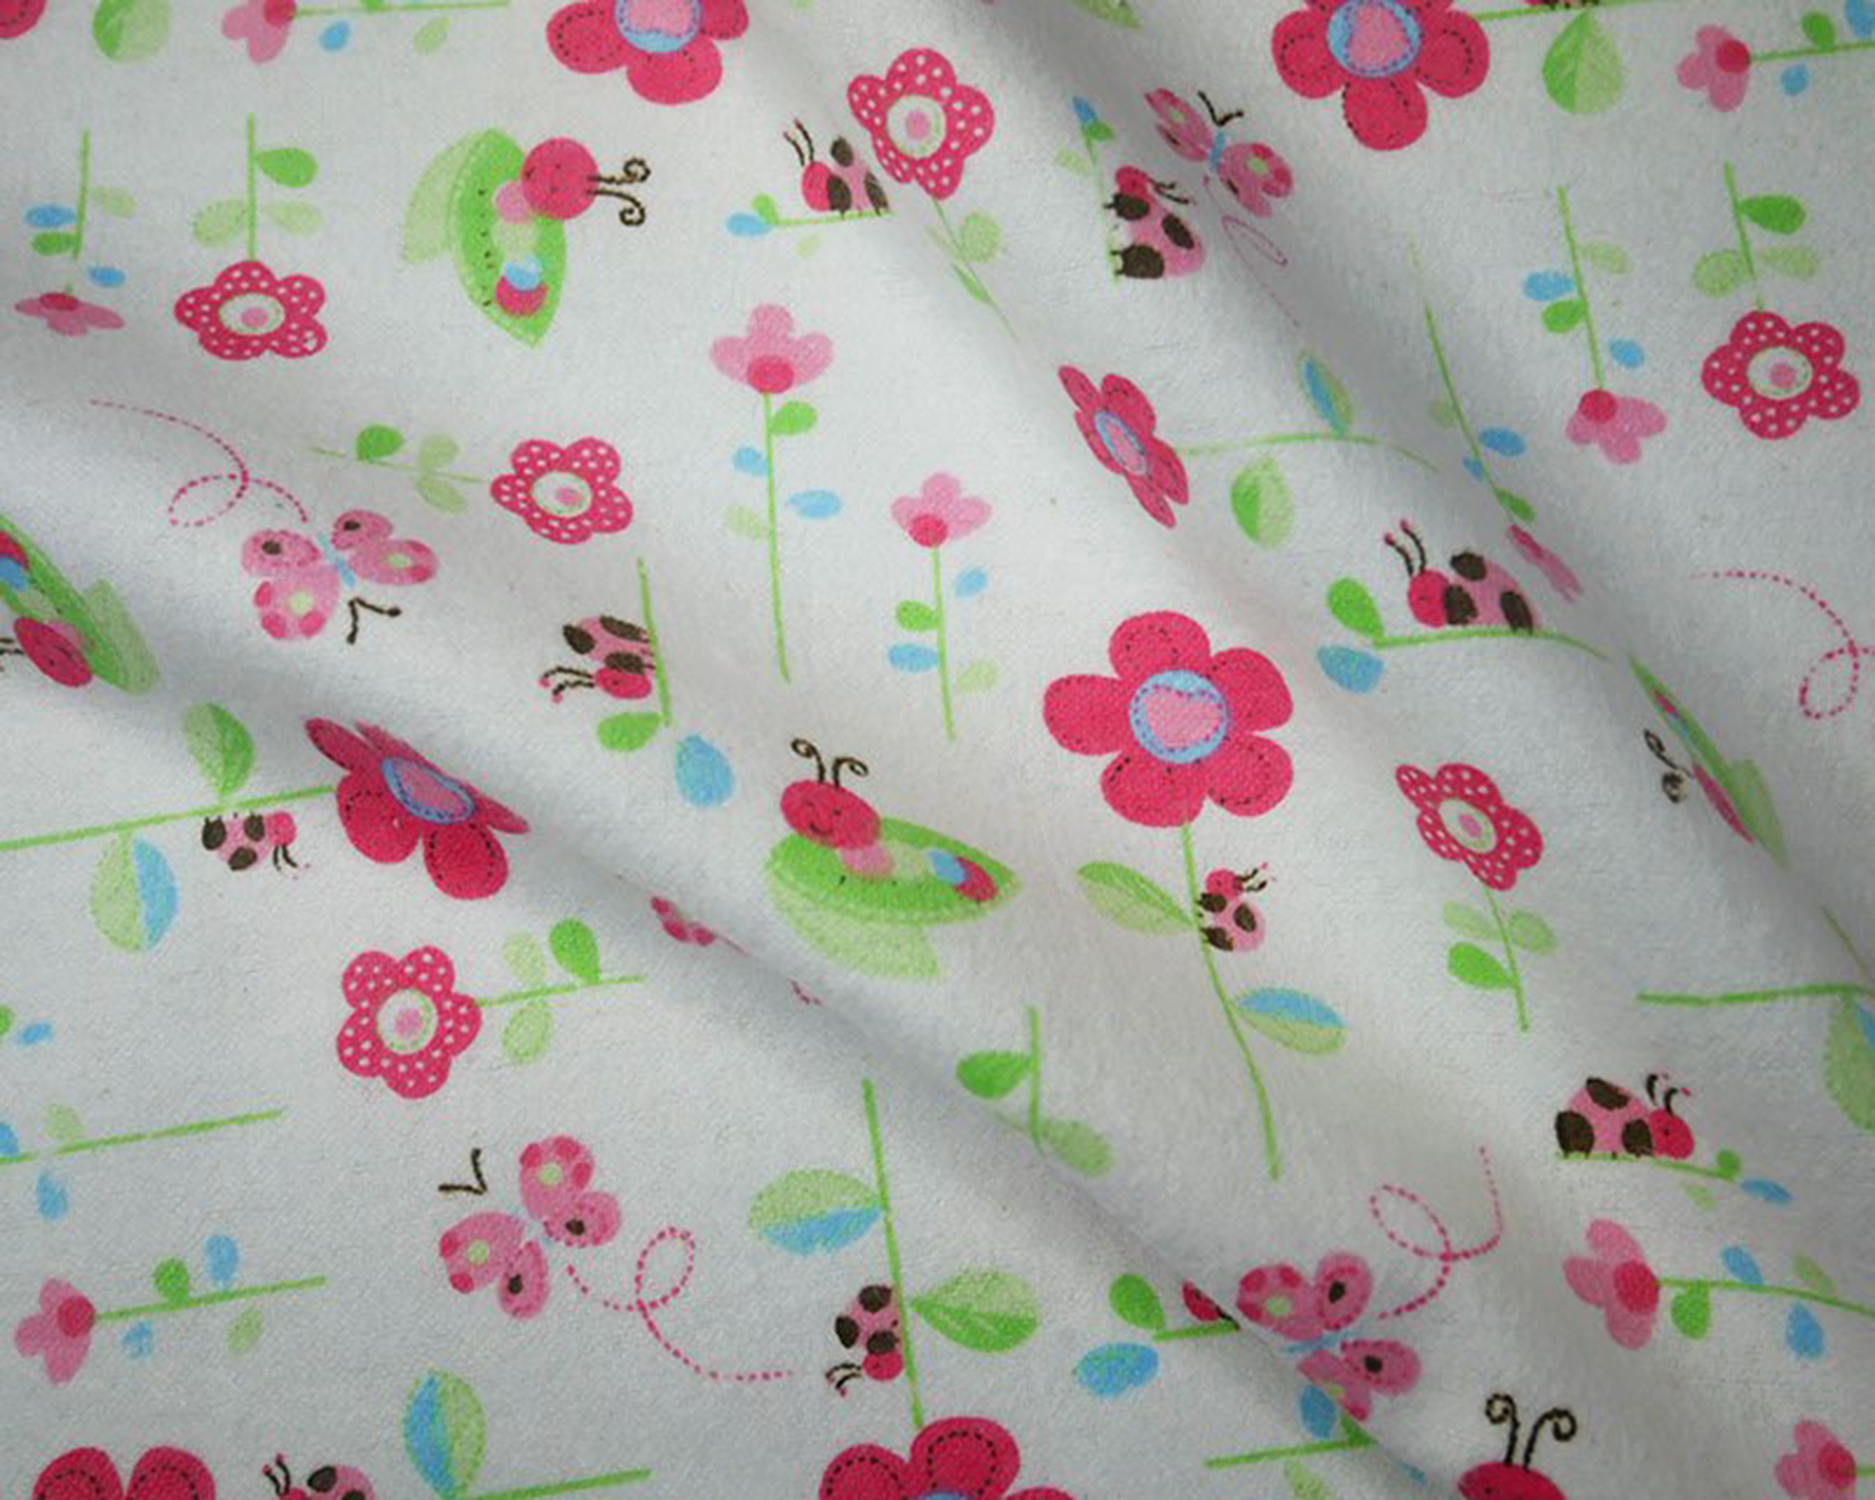 Brushed Cotton Fabric Small Flowers Flannel Super Soft On Both Sides Butterfly